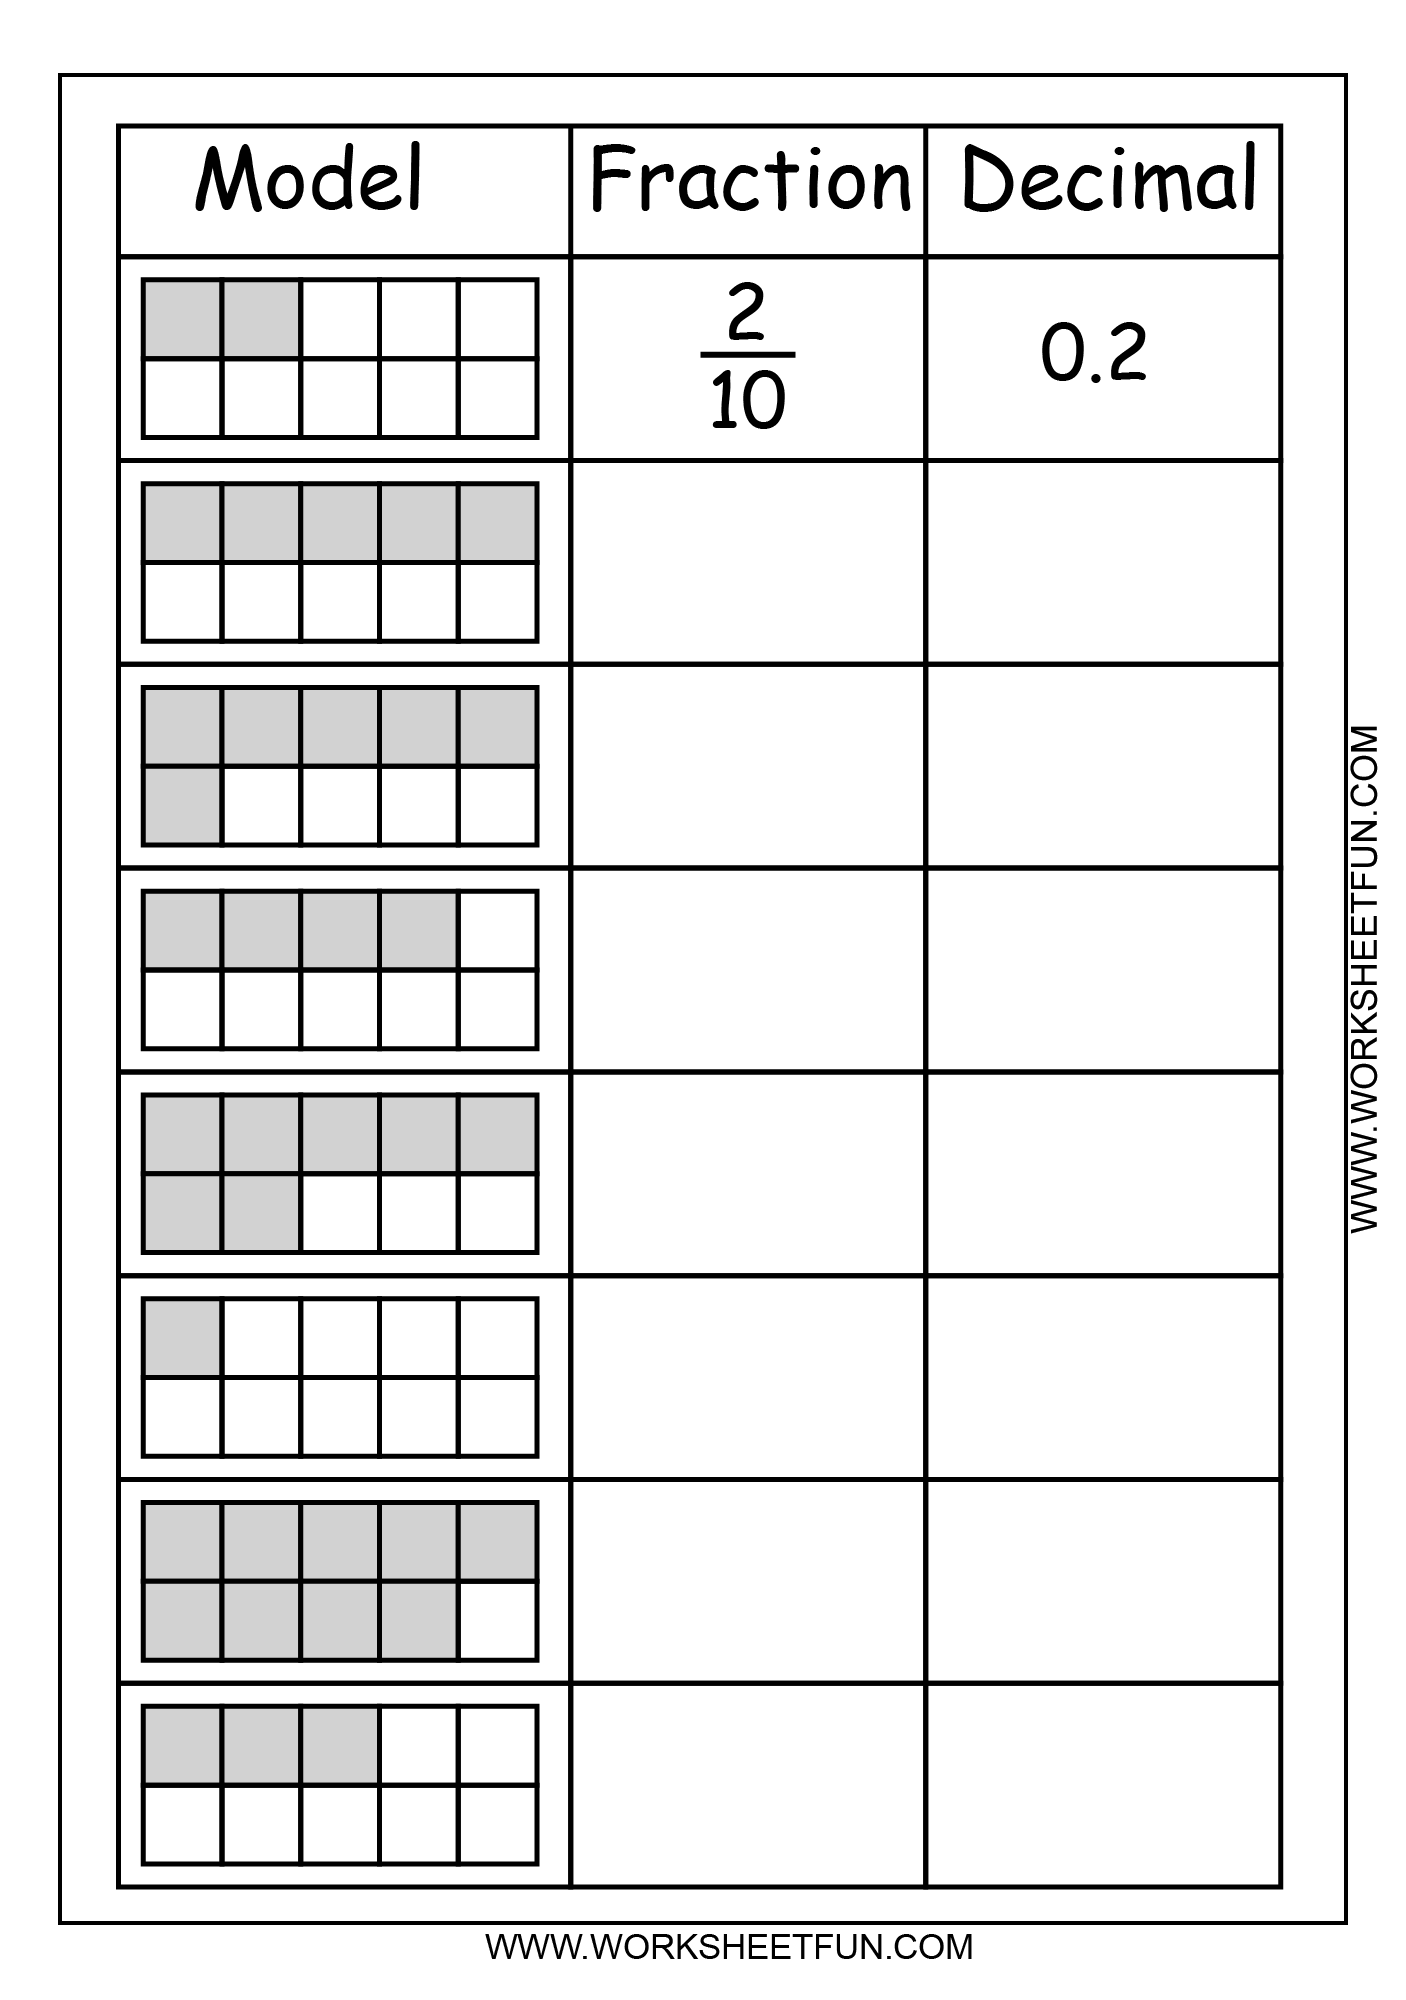 Model fraction decimal Printable Worksheets – Fraction Model Worksheets